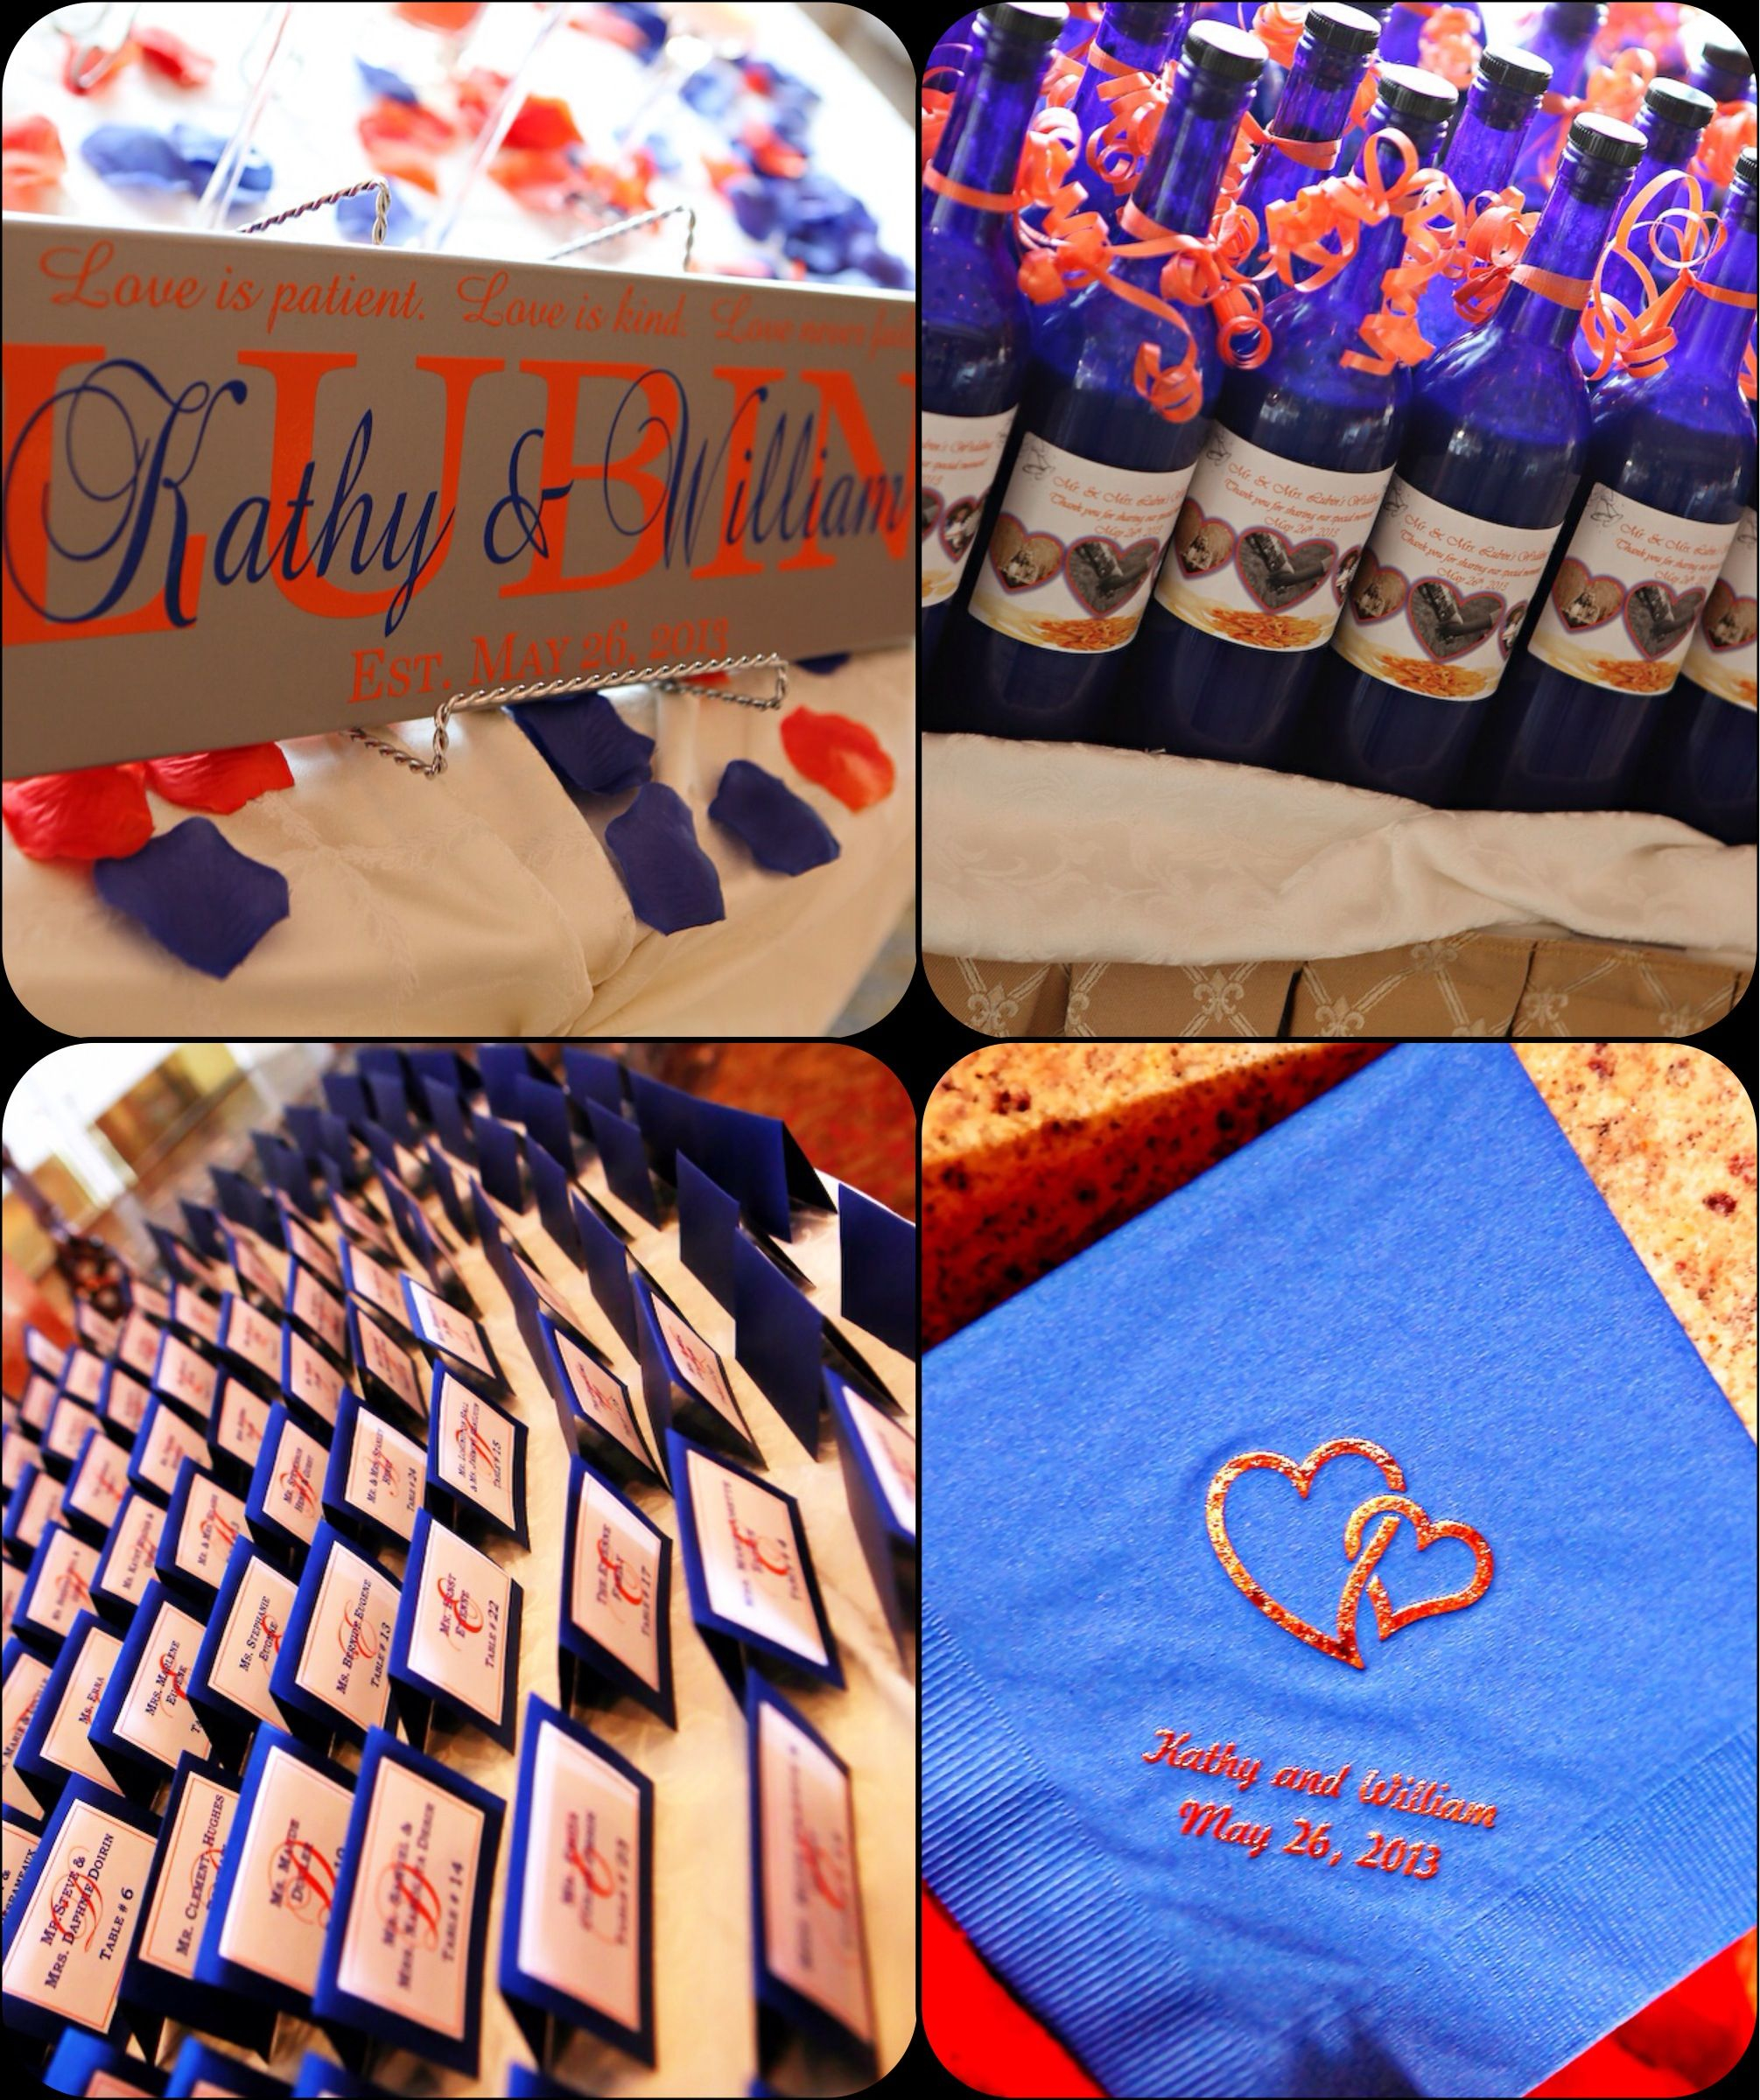 Coral Wedding Reception Ideas: Sapphire Blue / Royal Blue And Coral Themed Wedding